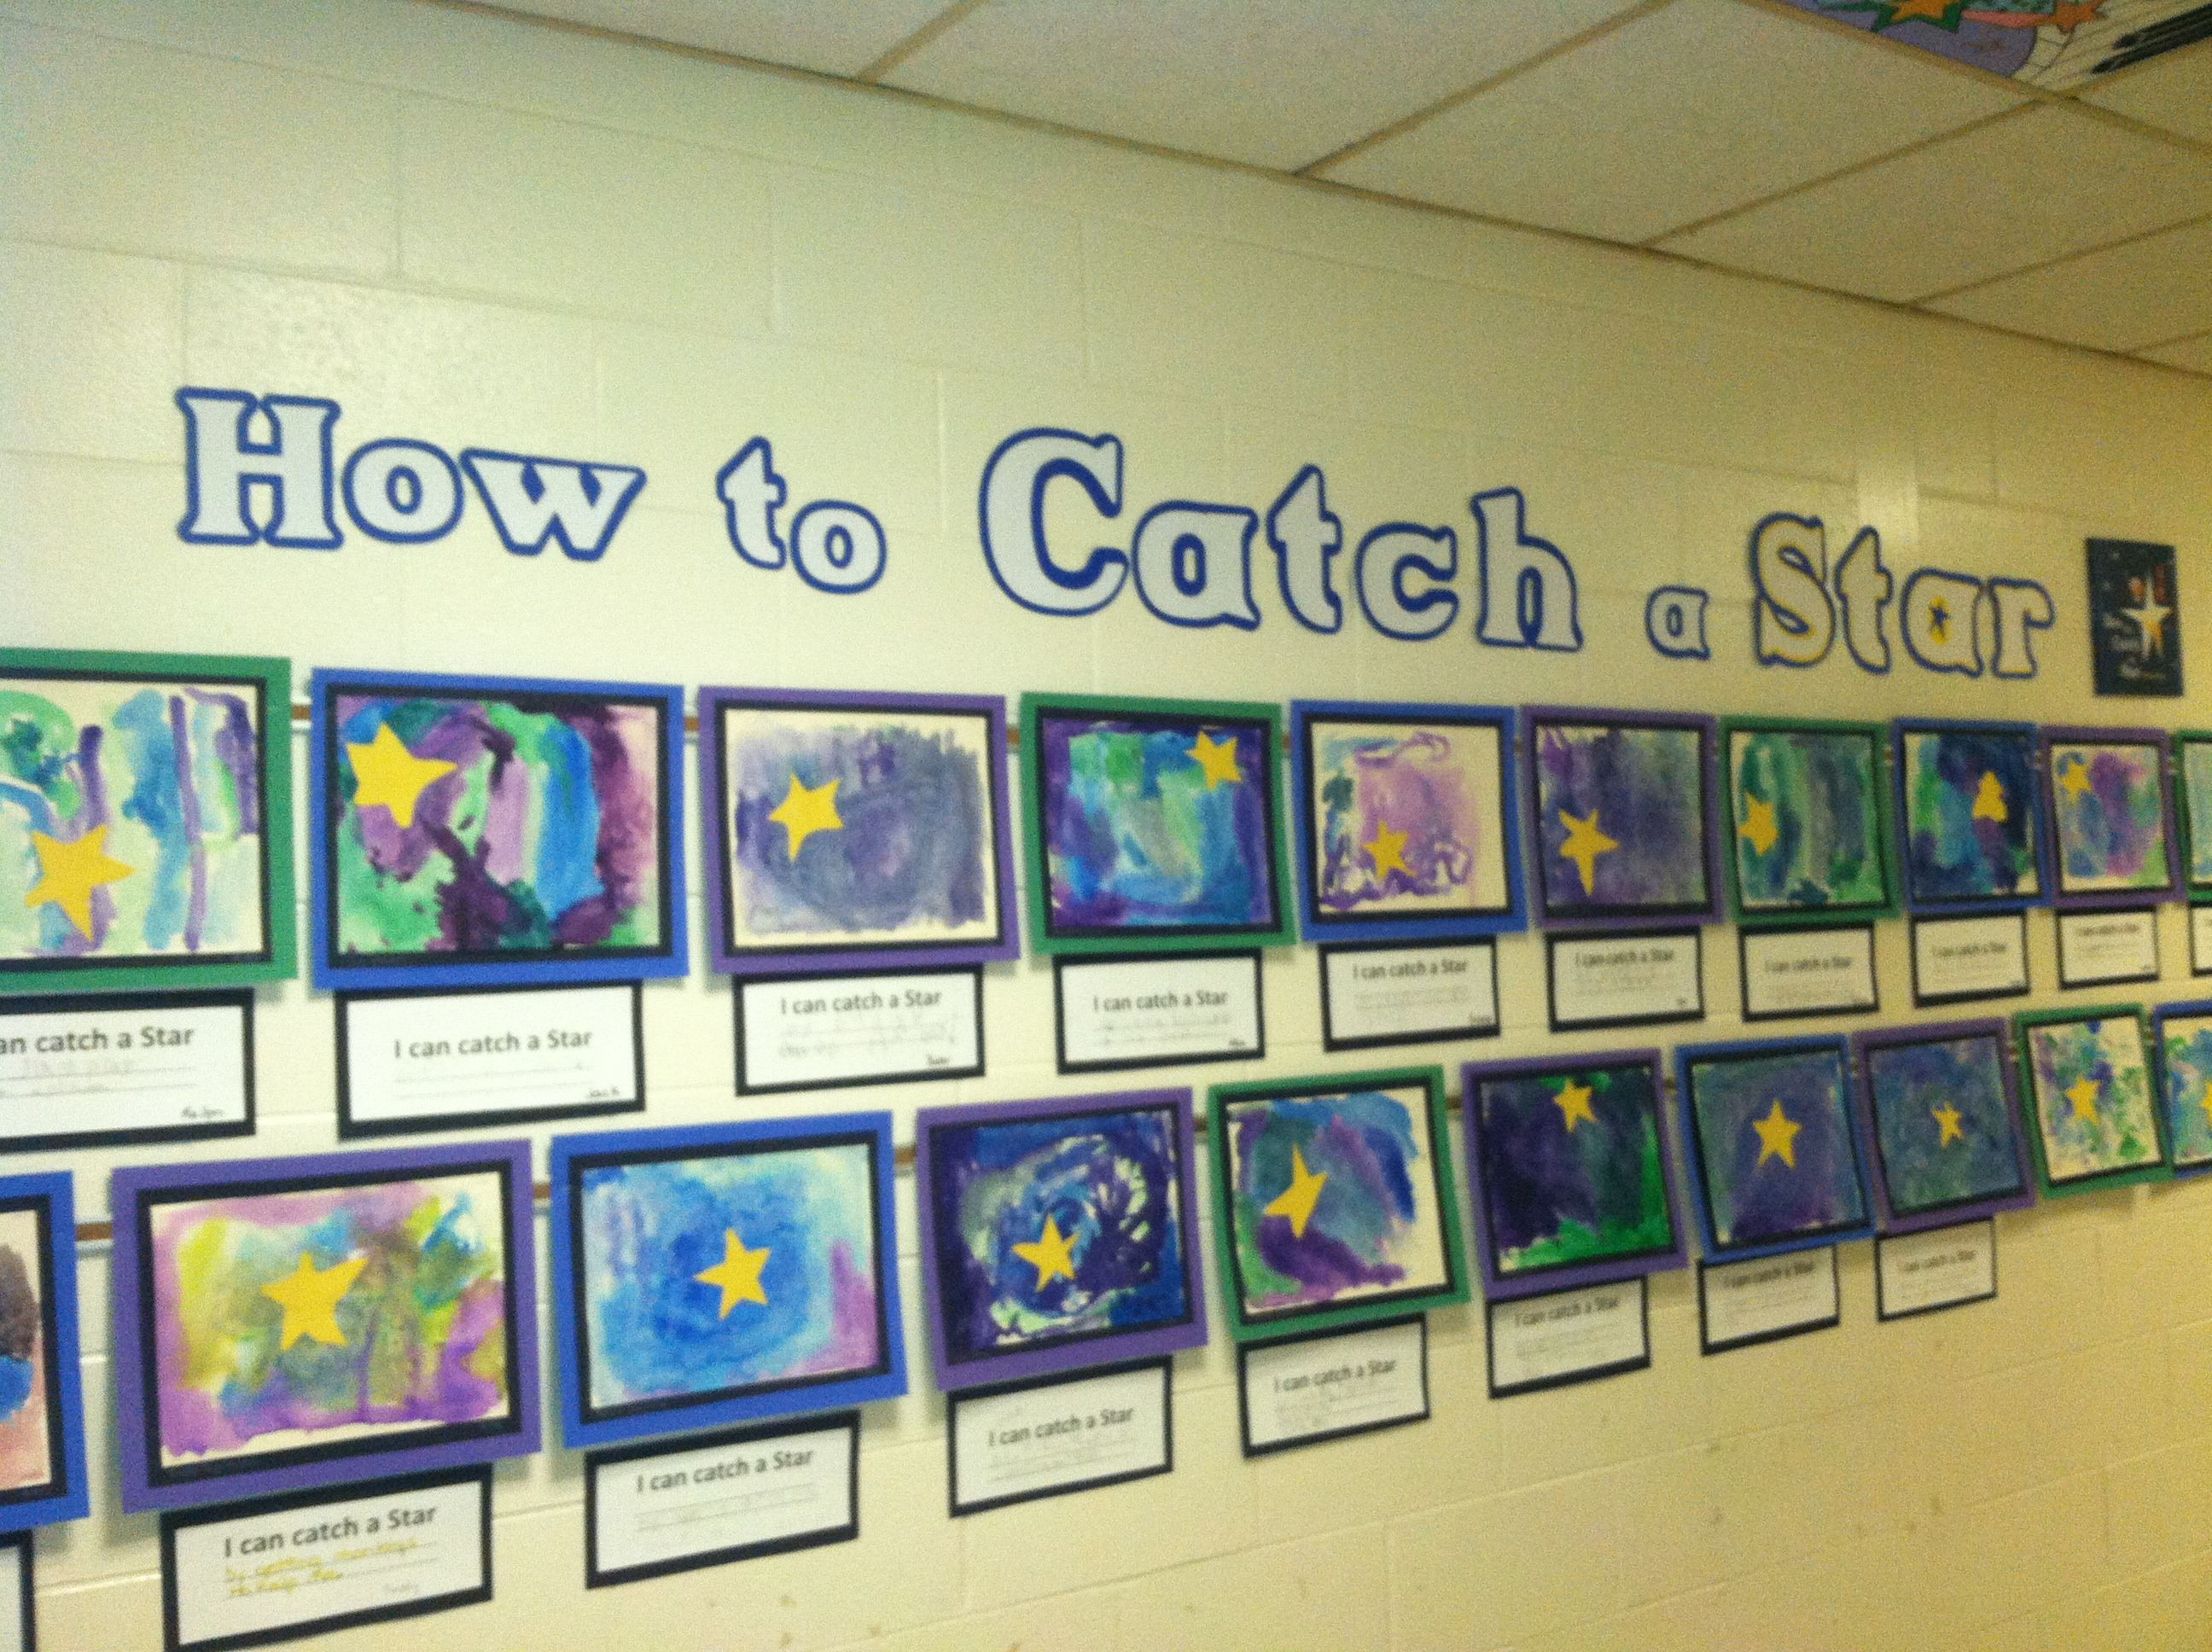 Kindergarten To Catch A Star Watercolor Salt Cut Paper Project Udents Wrote I Can